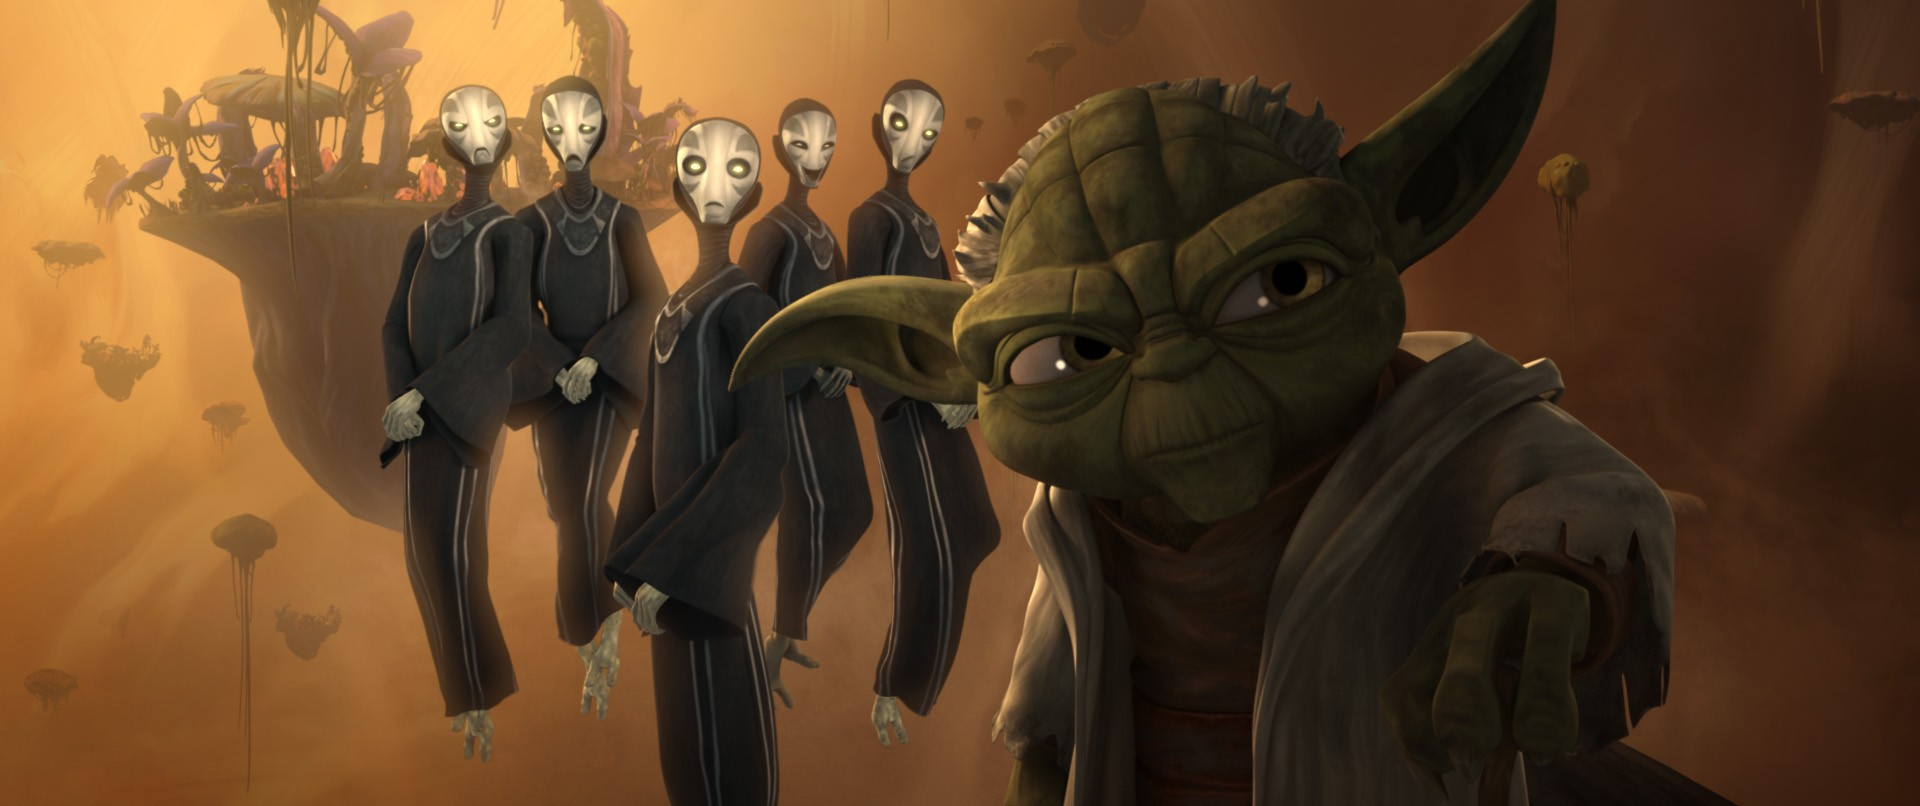 yoda-in-last-star-wars-clone-wars